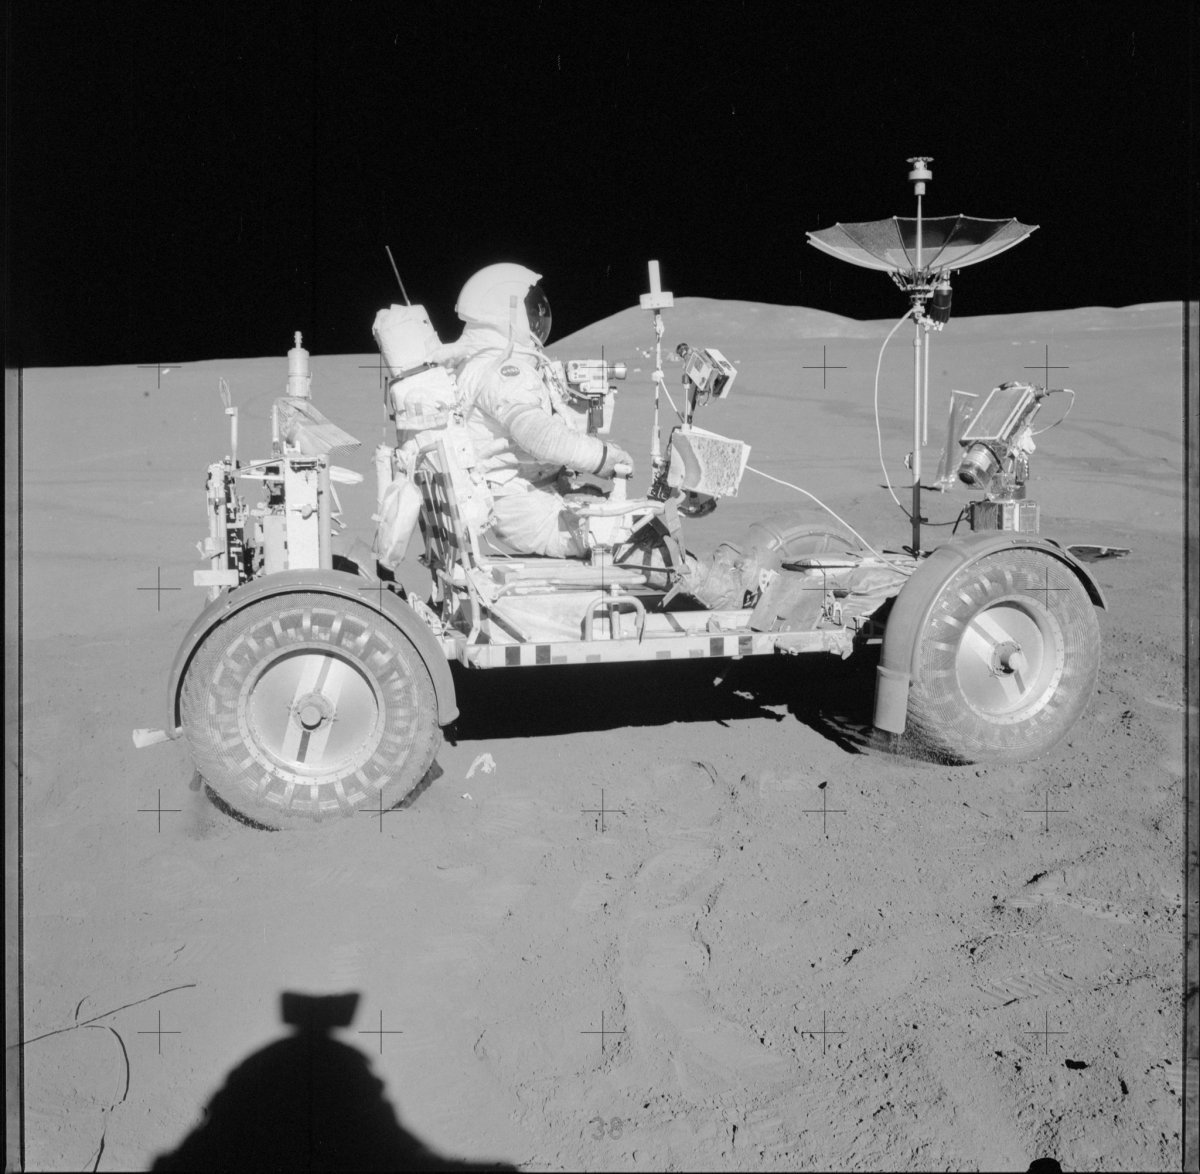 Incredible high-res photos of the Apollo missions have ...